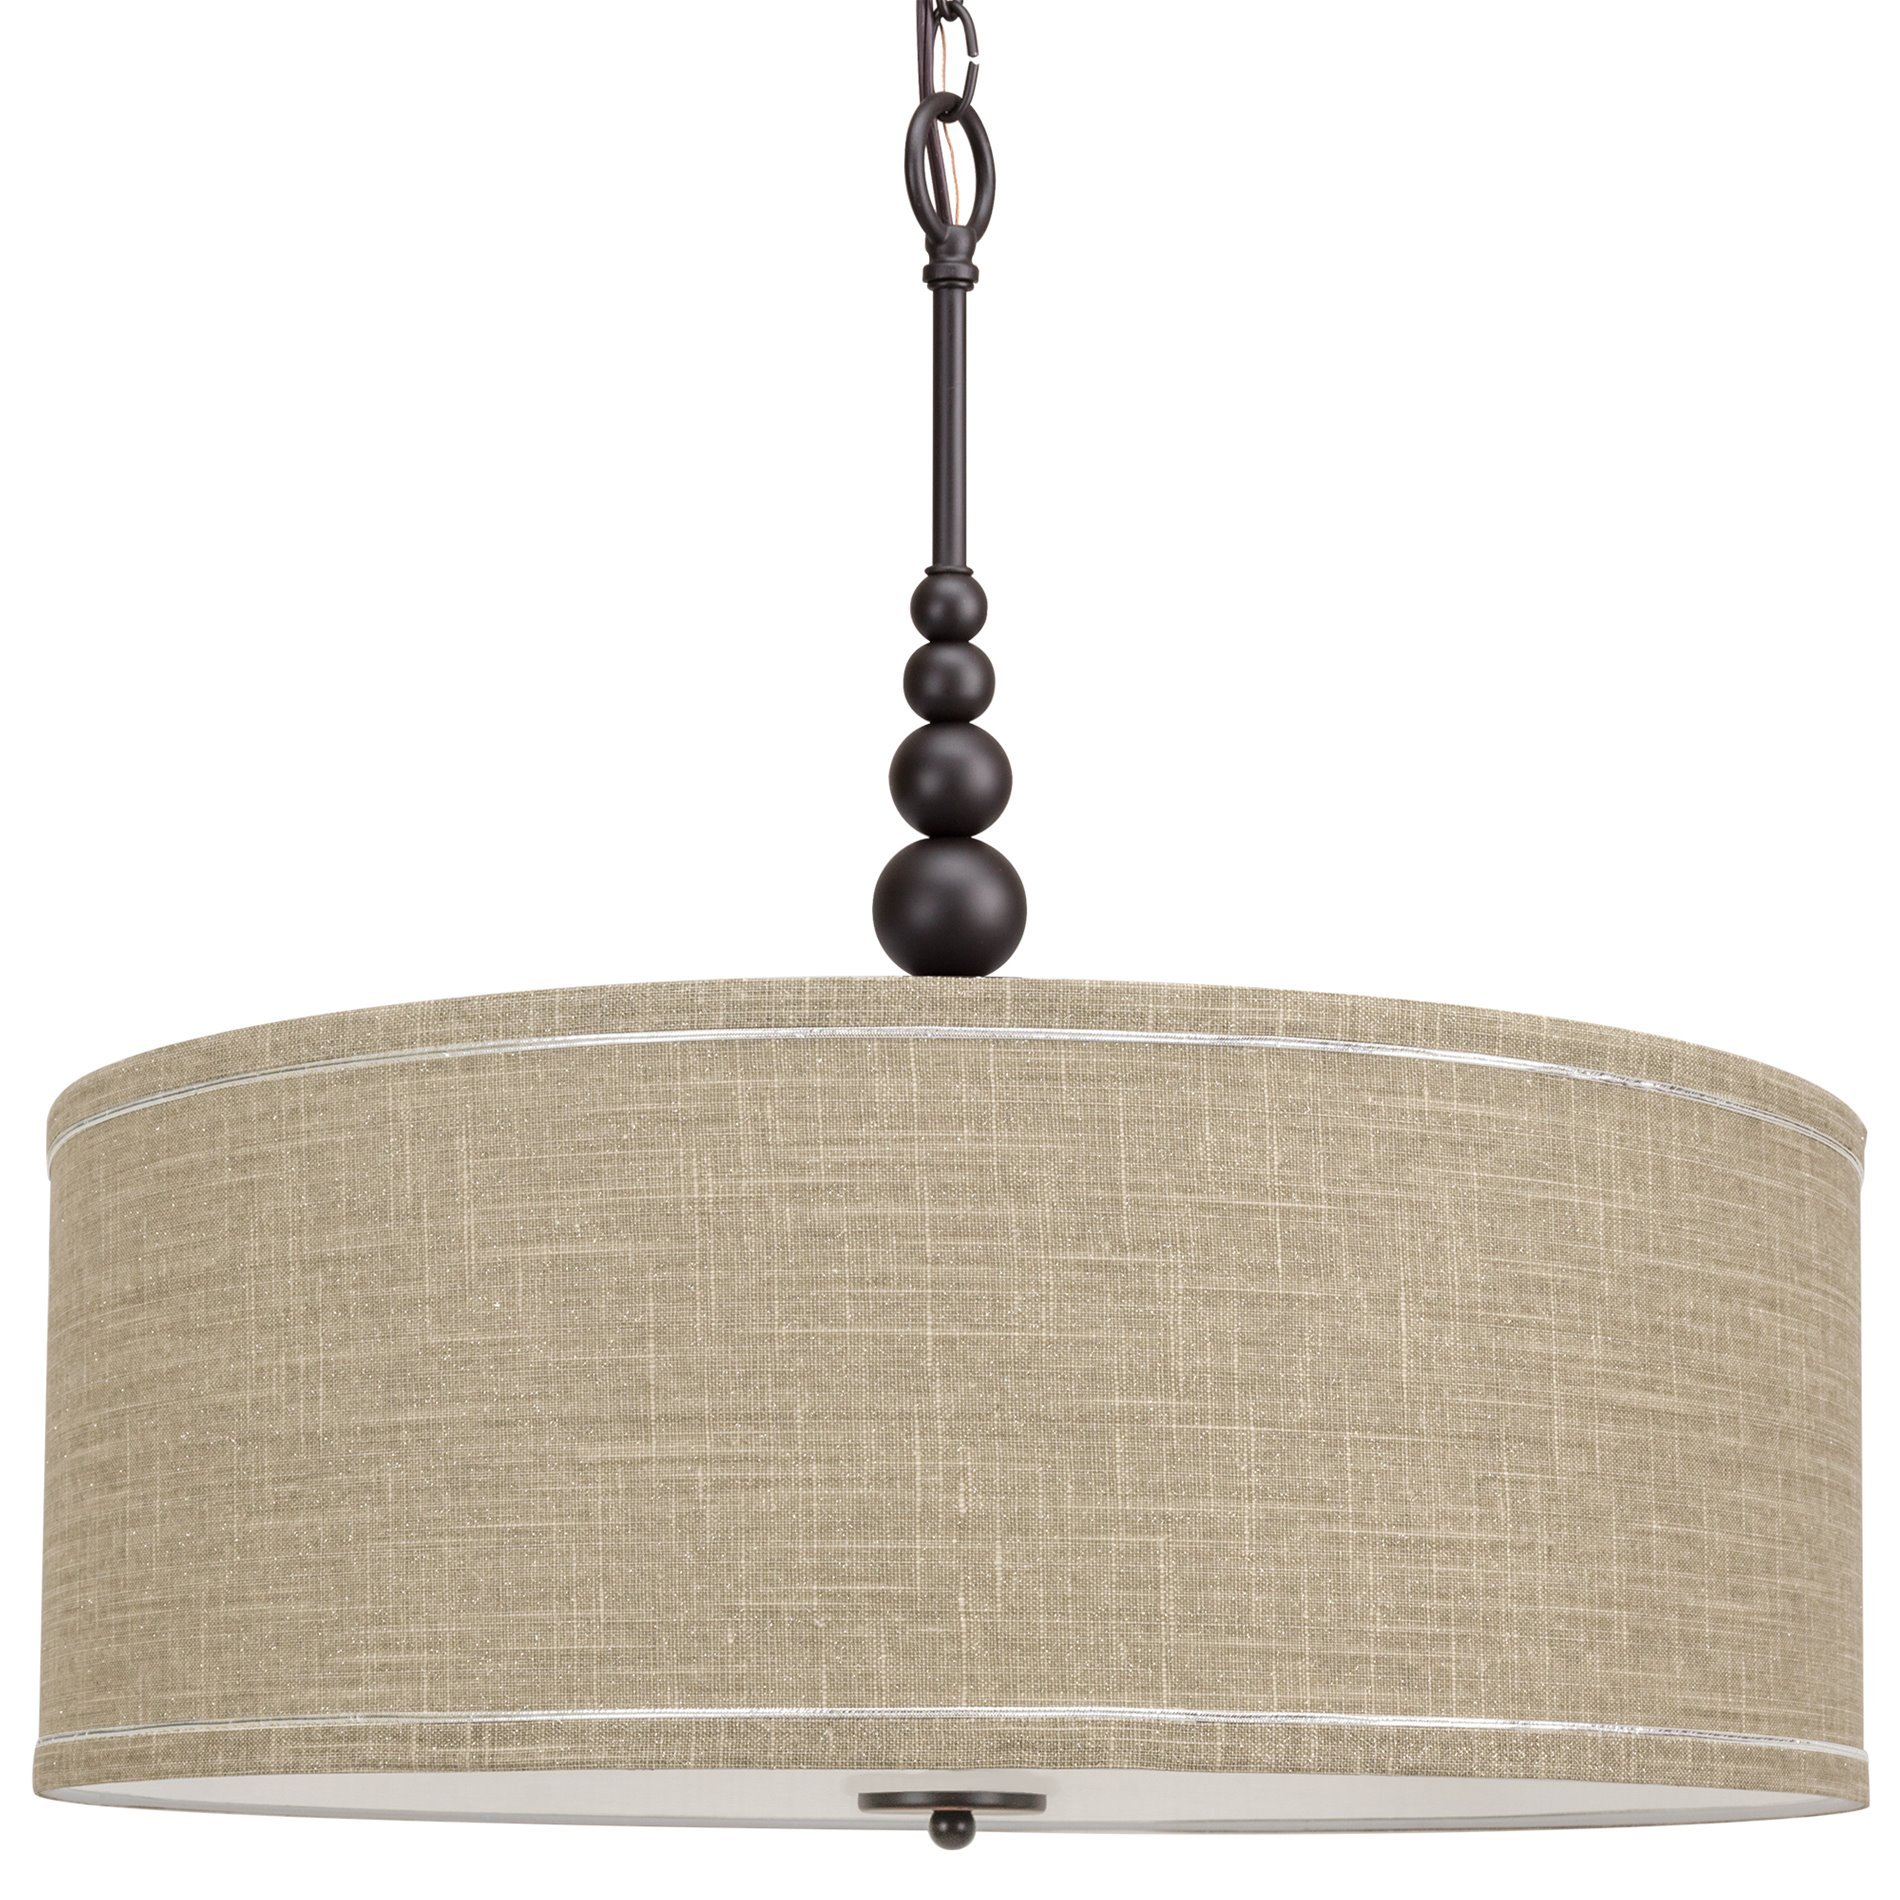 Kira Home Adelade 22'' Modern 3-Light Drum Pendant Chandelier, Sand Fabric Shade, Tempered Glass Diffuser, Adjustable Height, Oil-Rubbed Bronze Finish